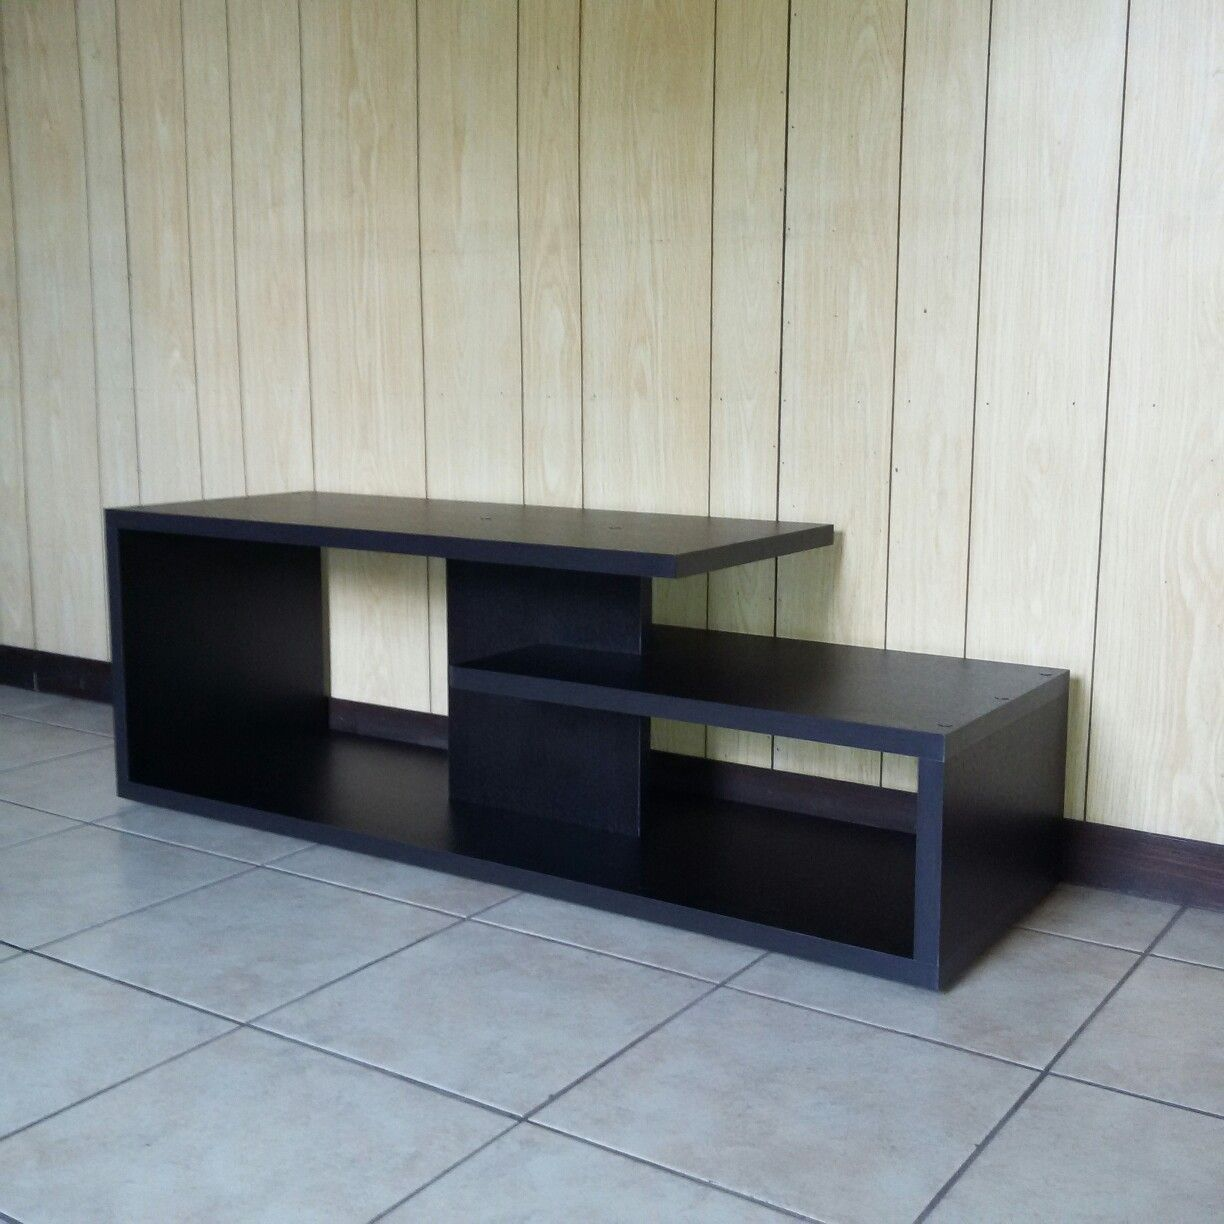 Modulo para tv tvs pinterest modulares para tv for Modulos muebles